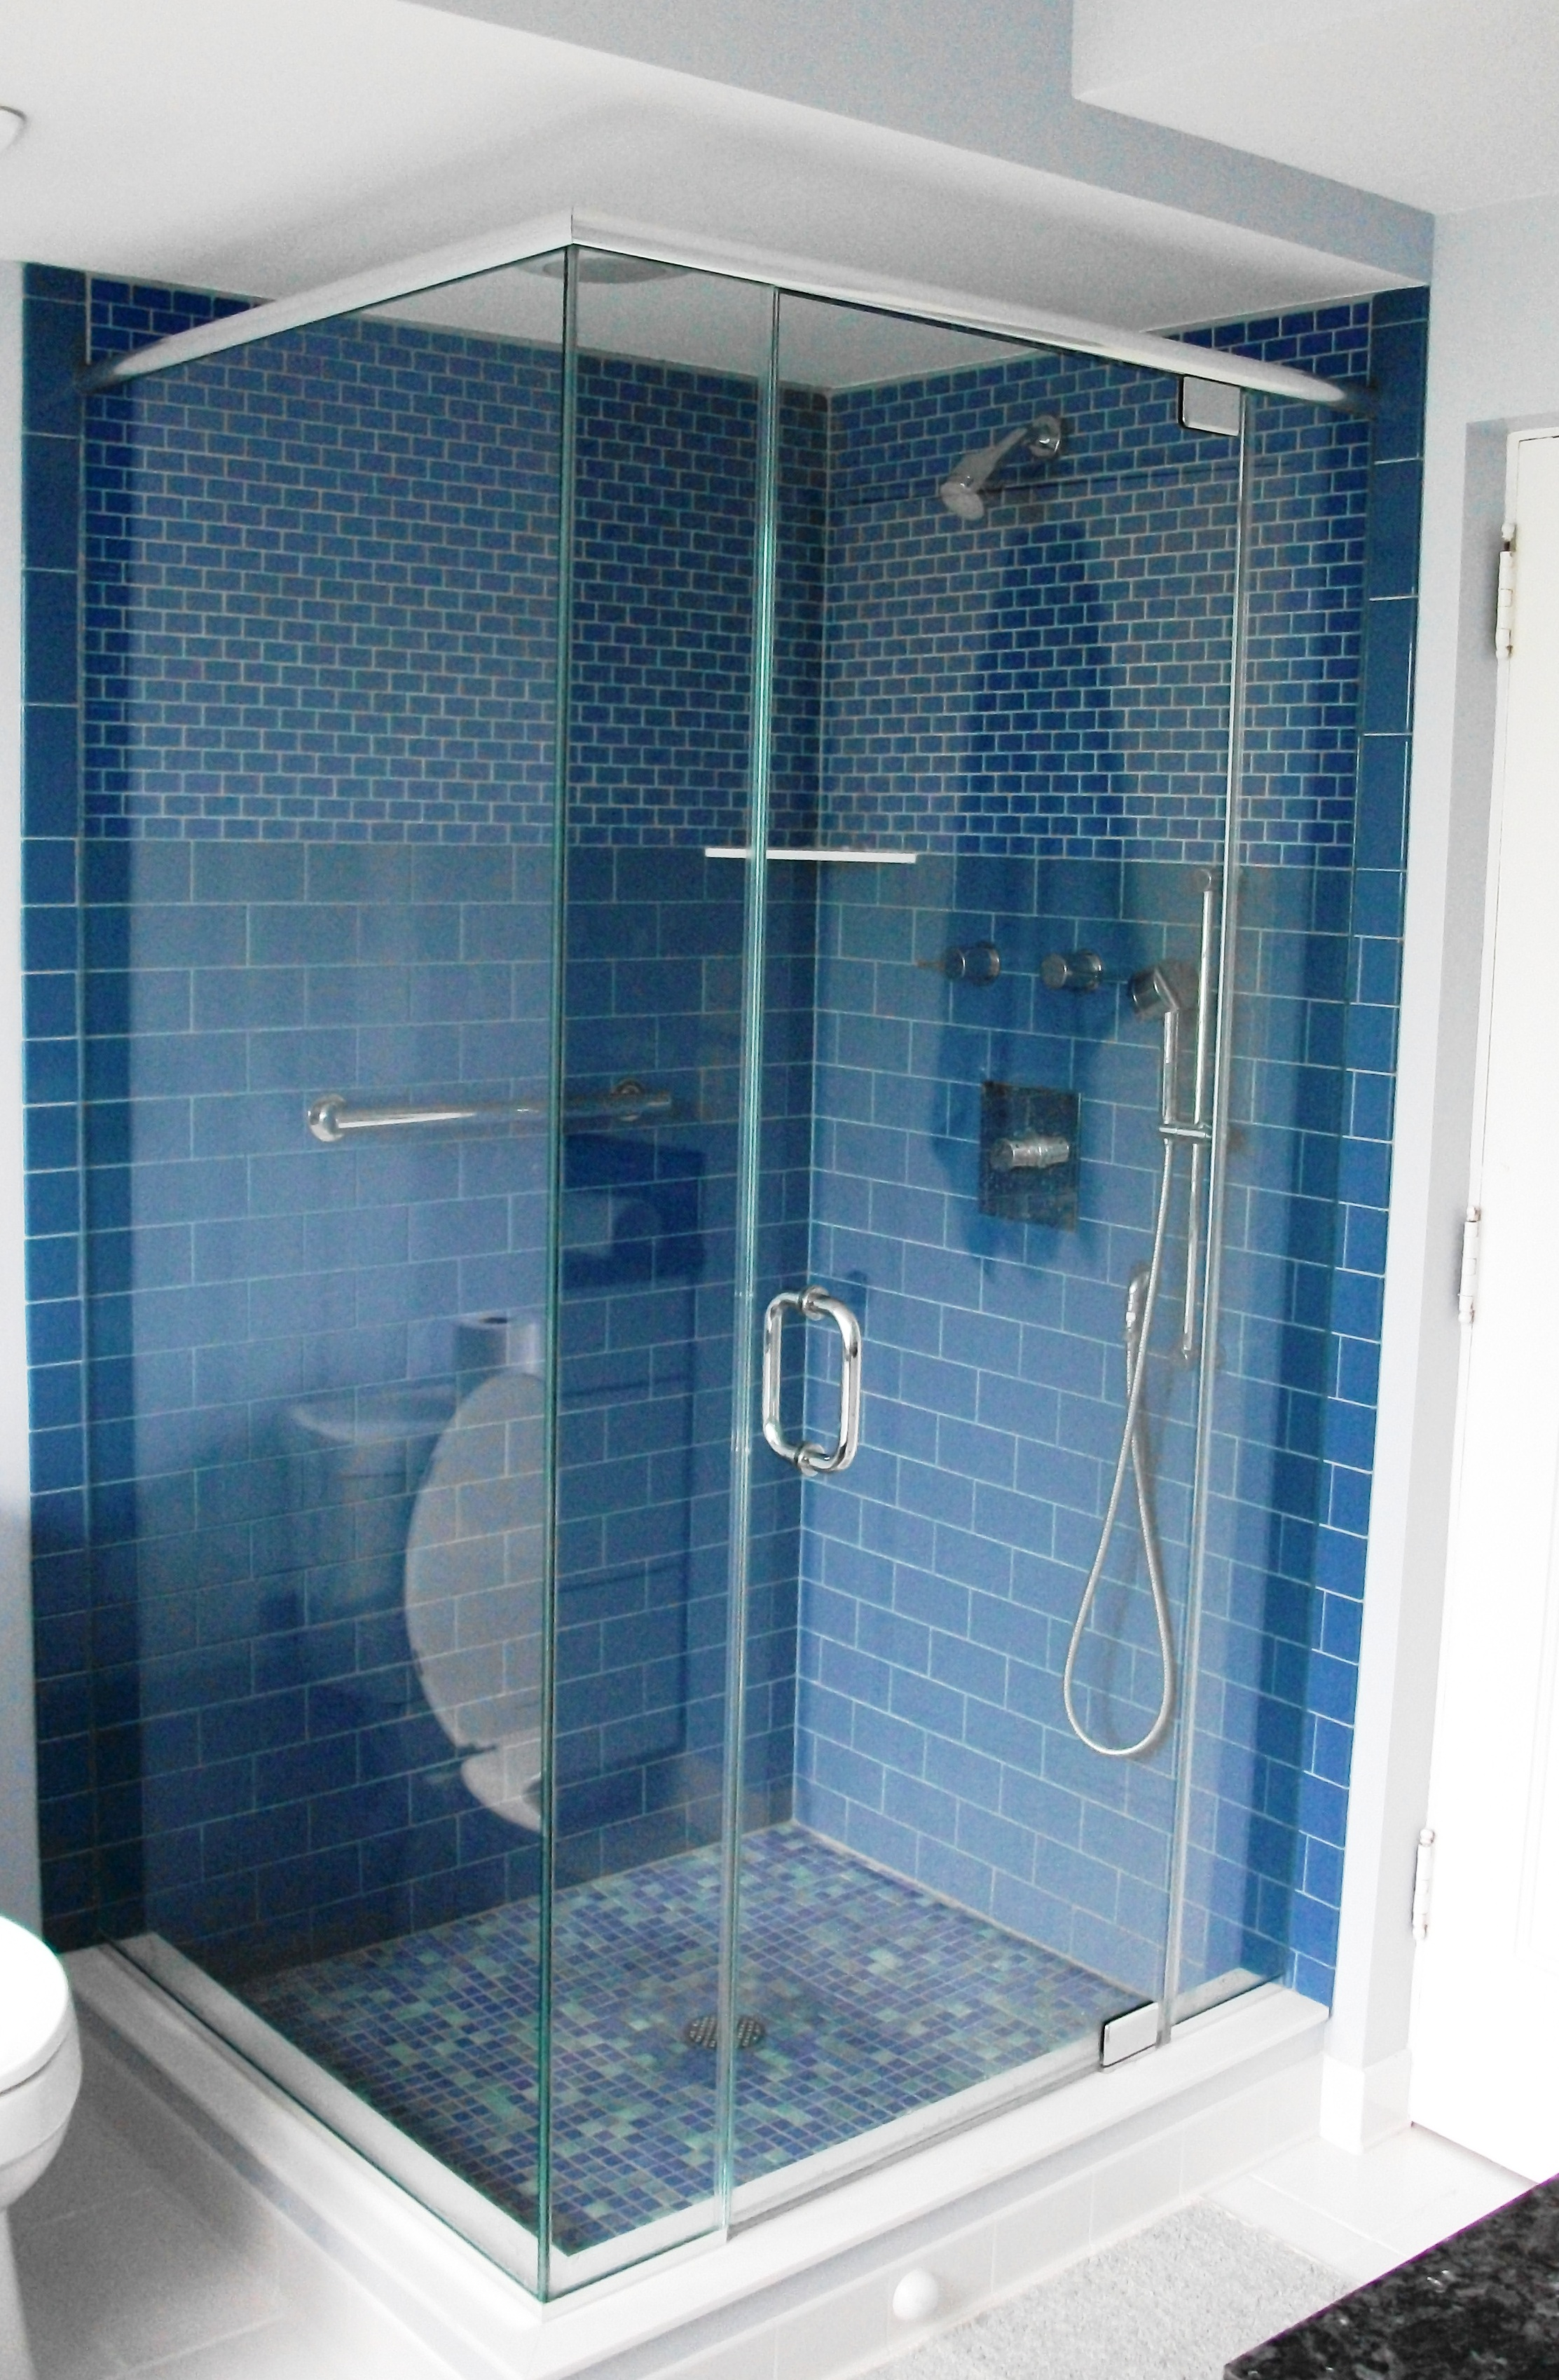 Shower Enclosures | Window & Glass Repair – Glass Builders .com